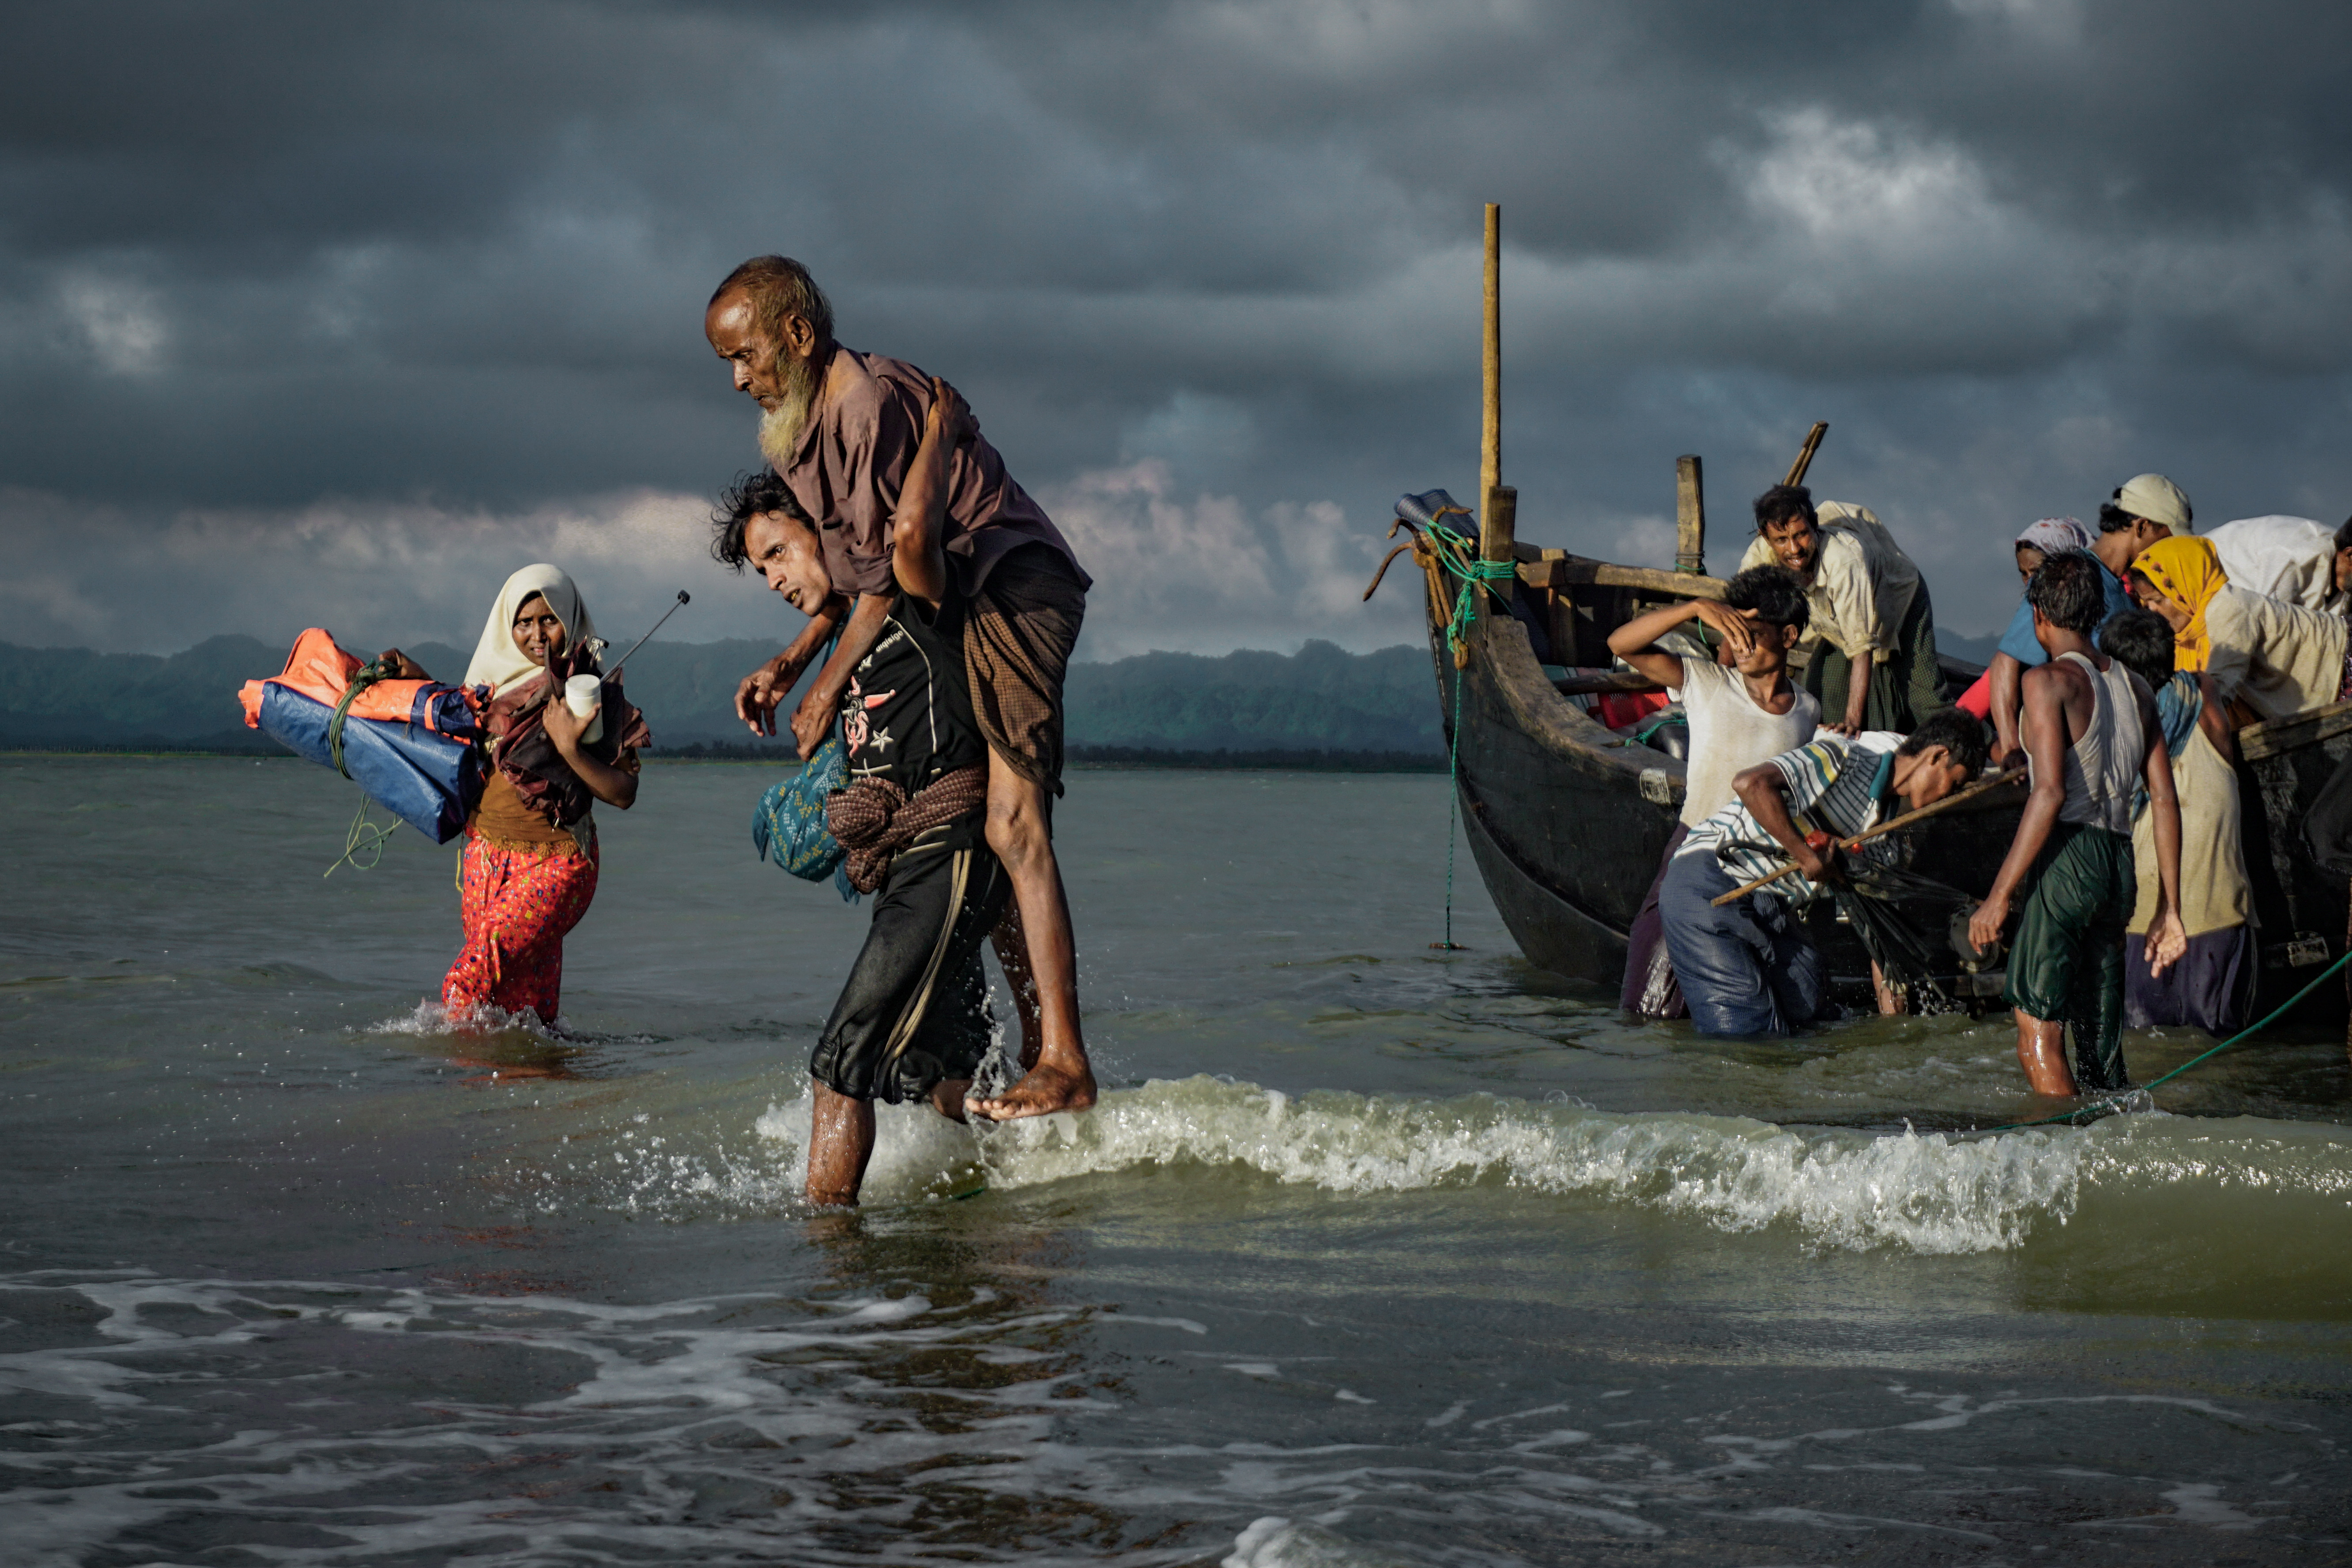 Rohingya Muslim refugees disembark from a boat on the Bangladeshi side of the Naf River in Teknaf on Sept. 13, 2017.